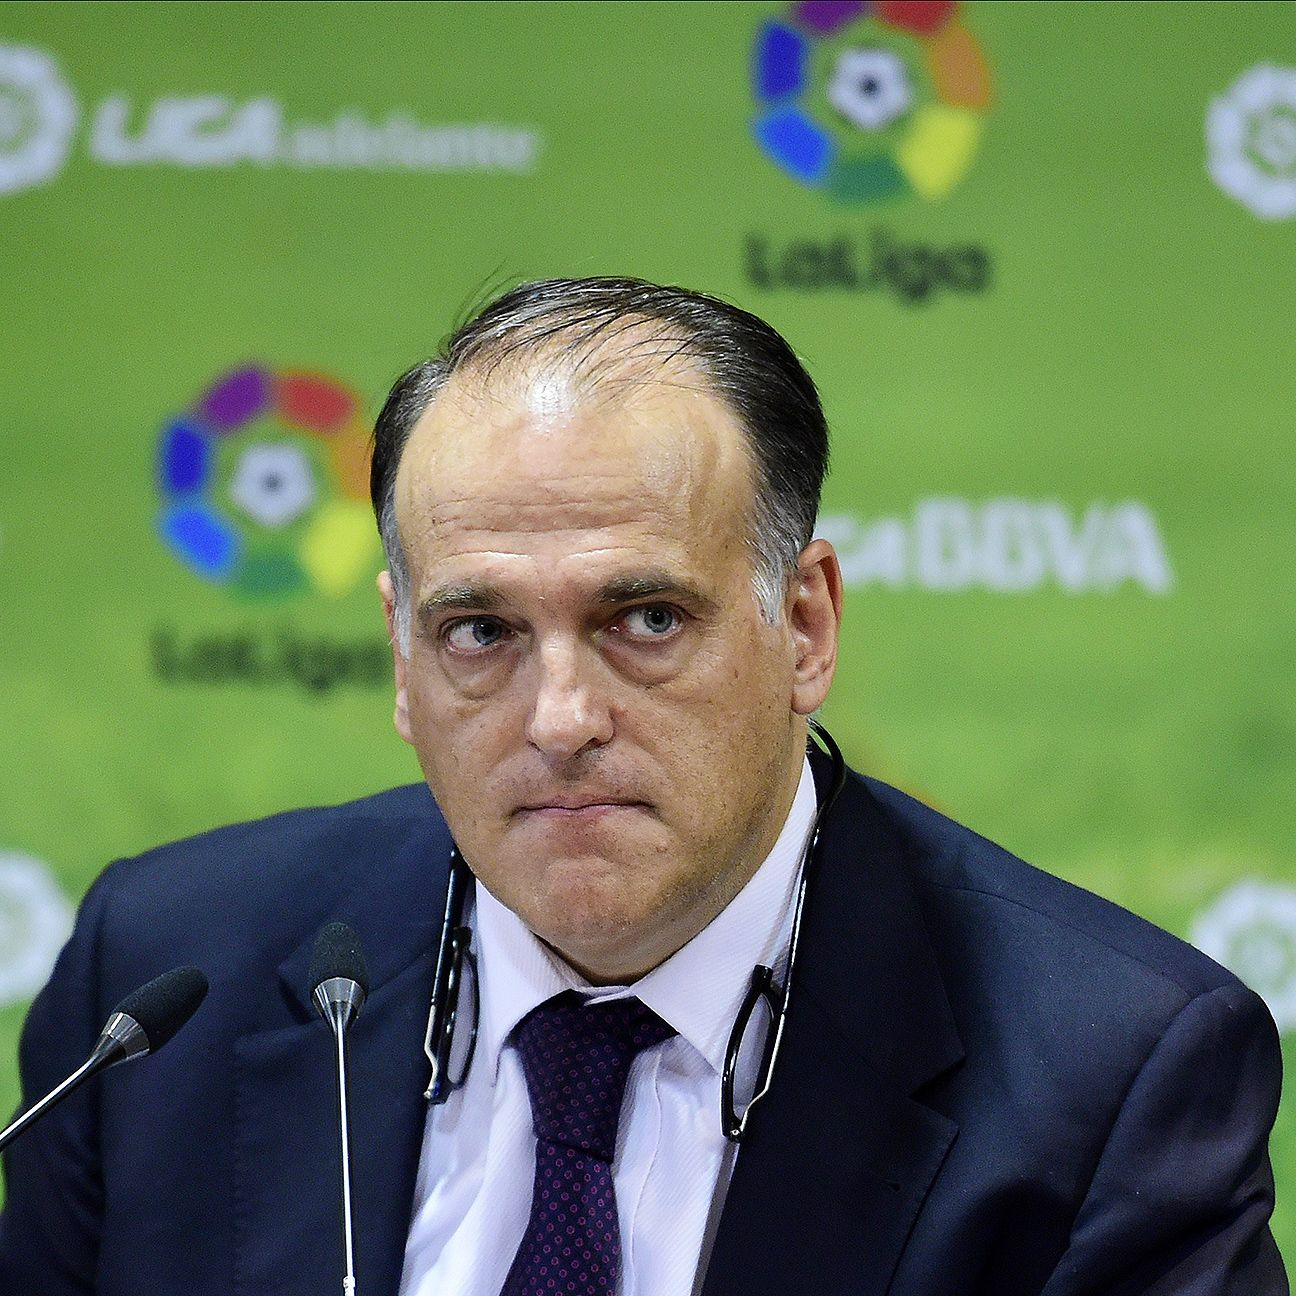 La Liga president Javier Tebas has not hidden his desire to have Christmas football become a permanent part of the Spanish calendar.